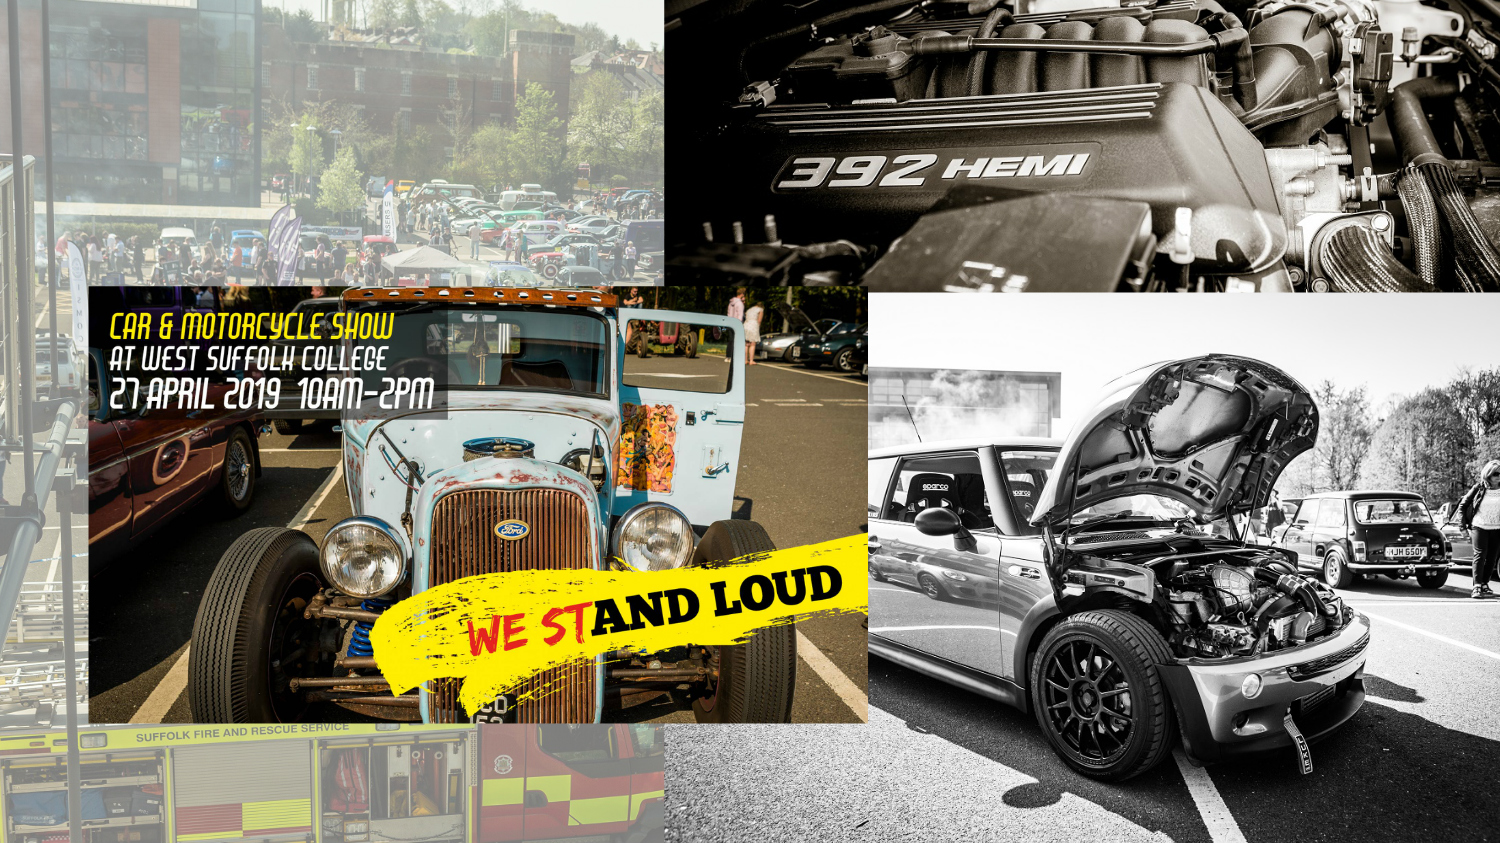 West And Loud Car & Motorcycle Show 2019